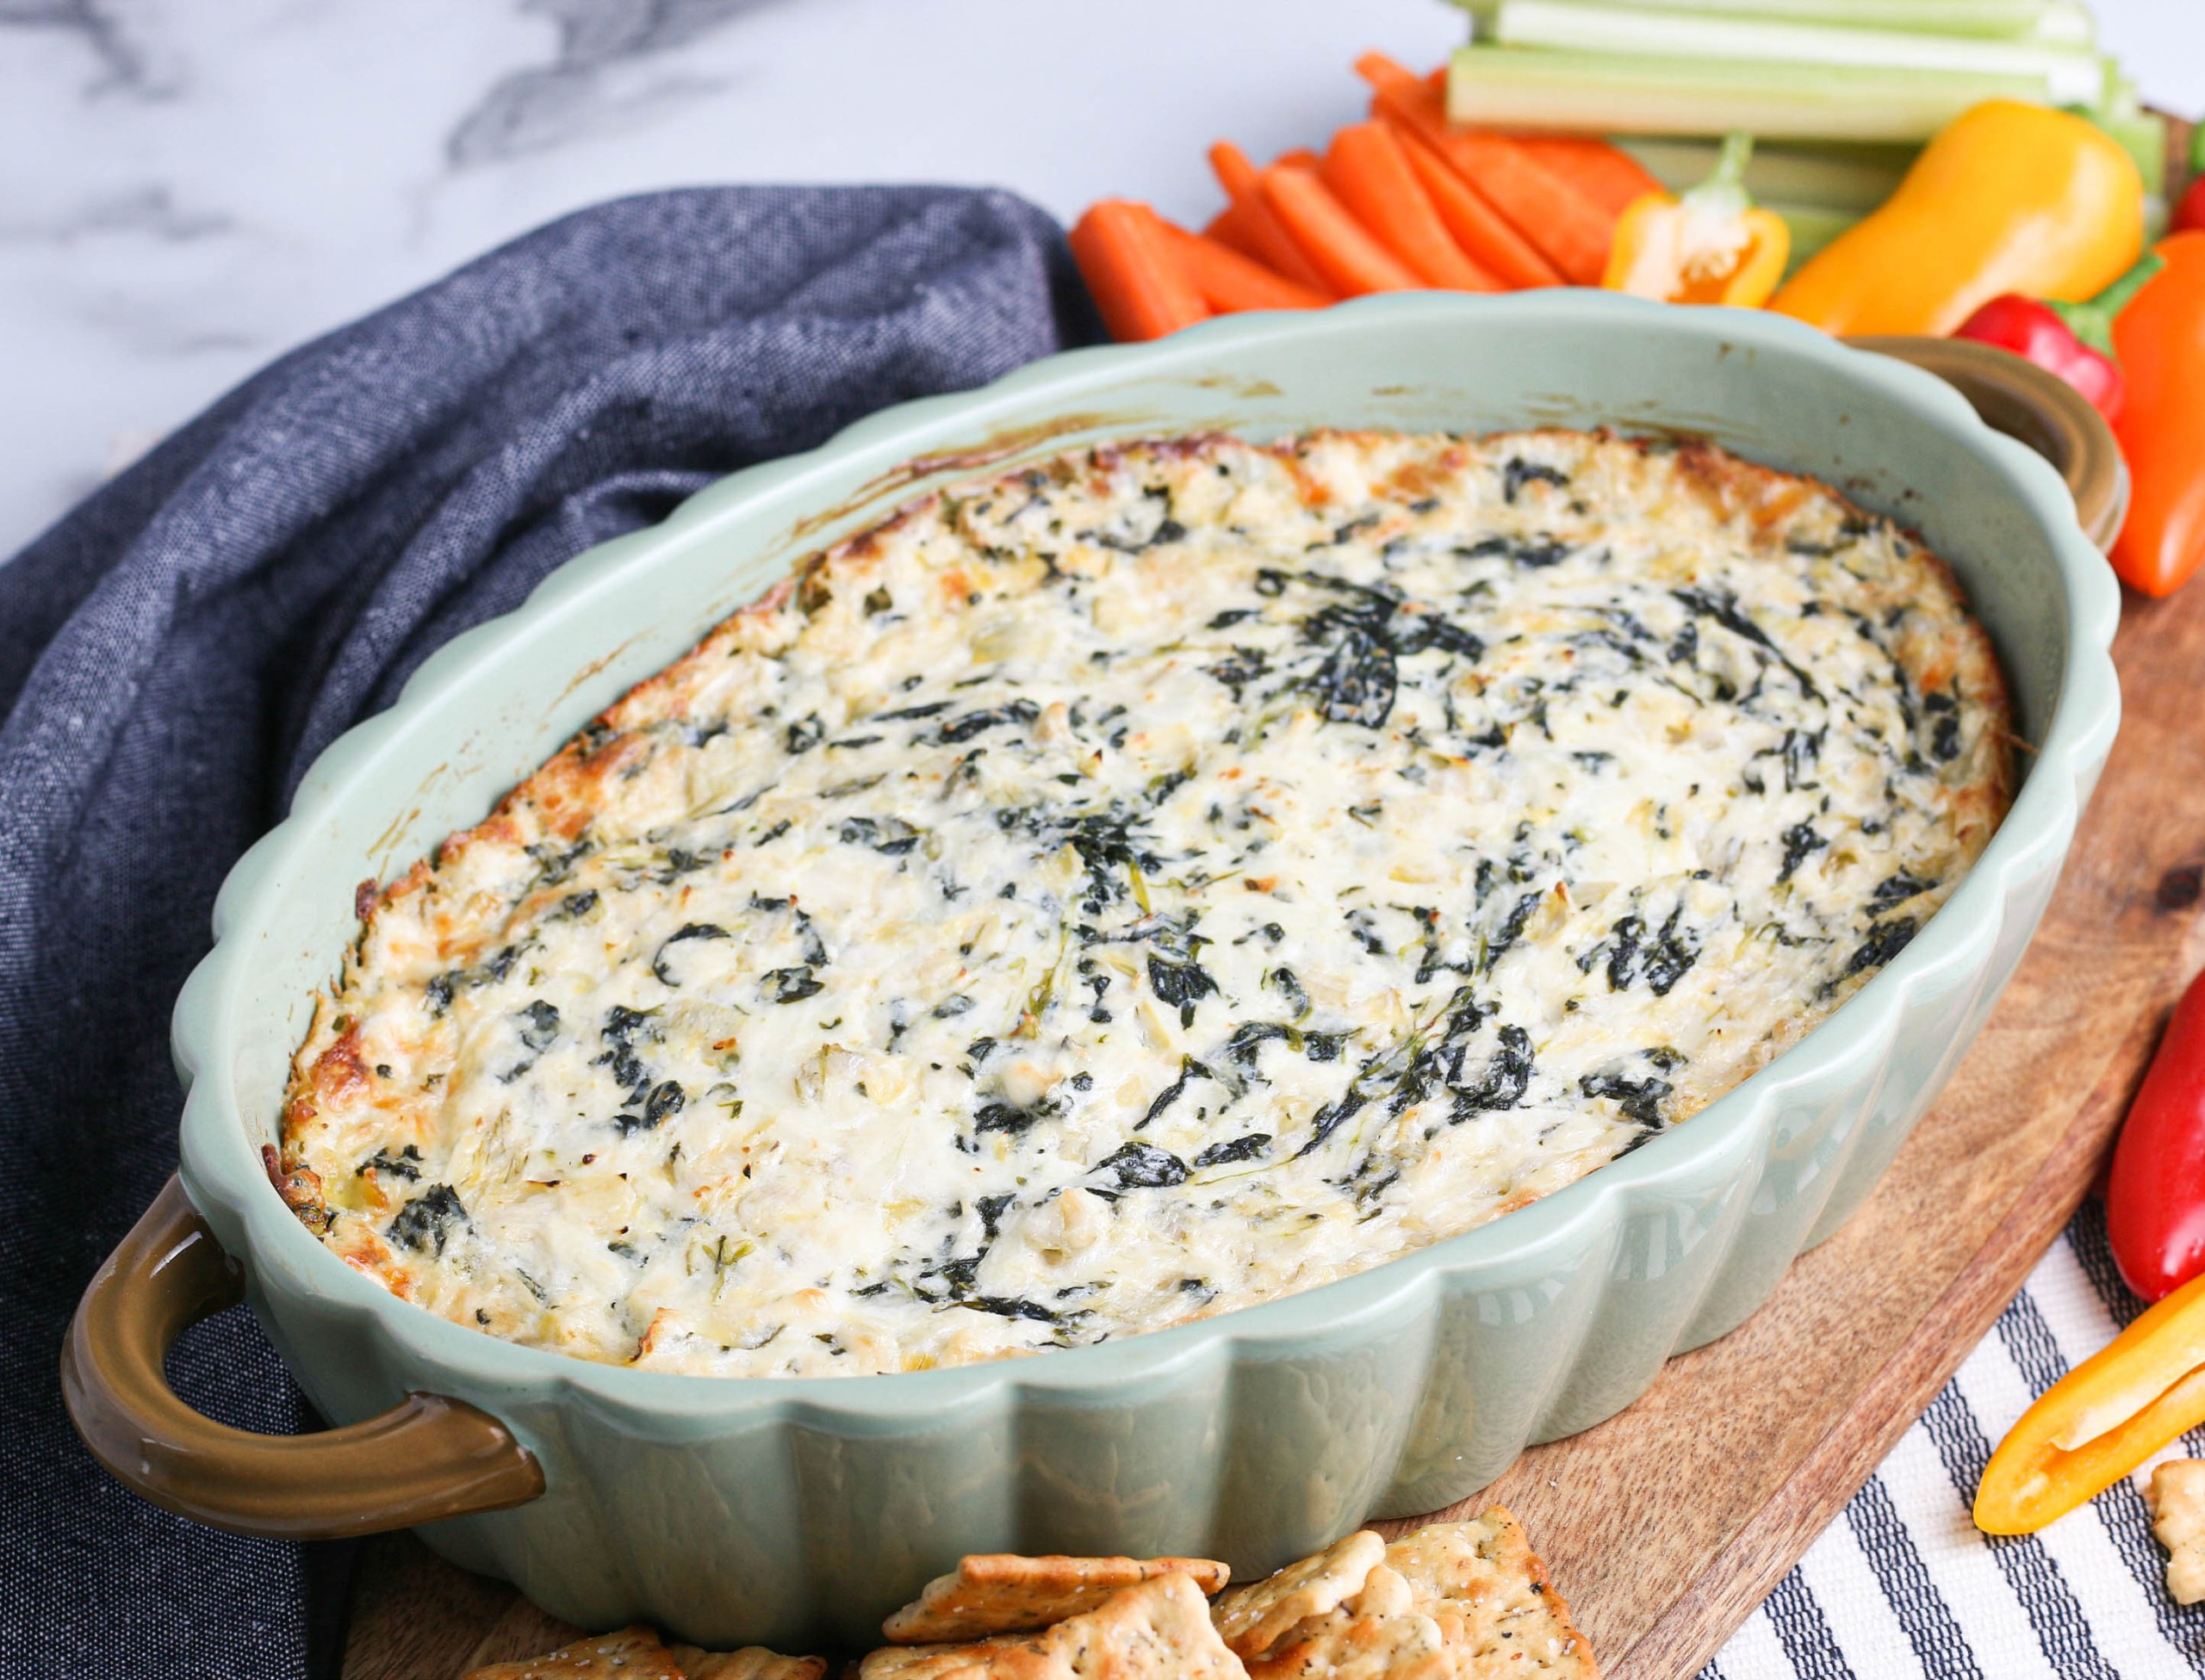 Spinach artichoke dip in light green baking dish with vegetables and crackers next to a blue napkin.